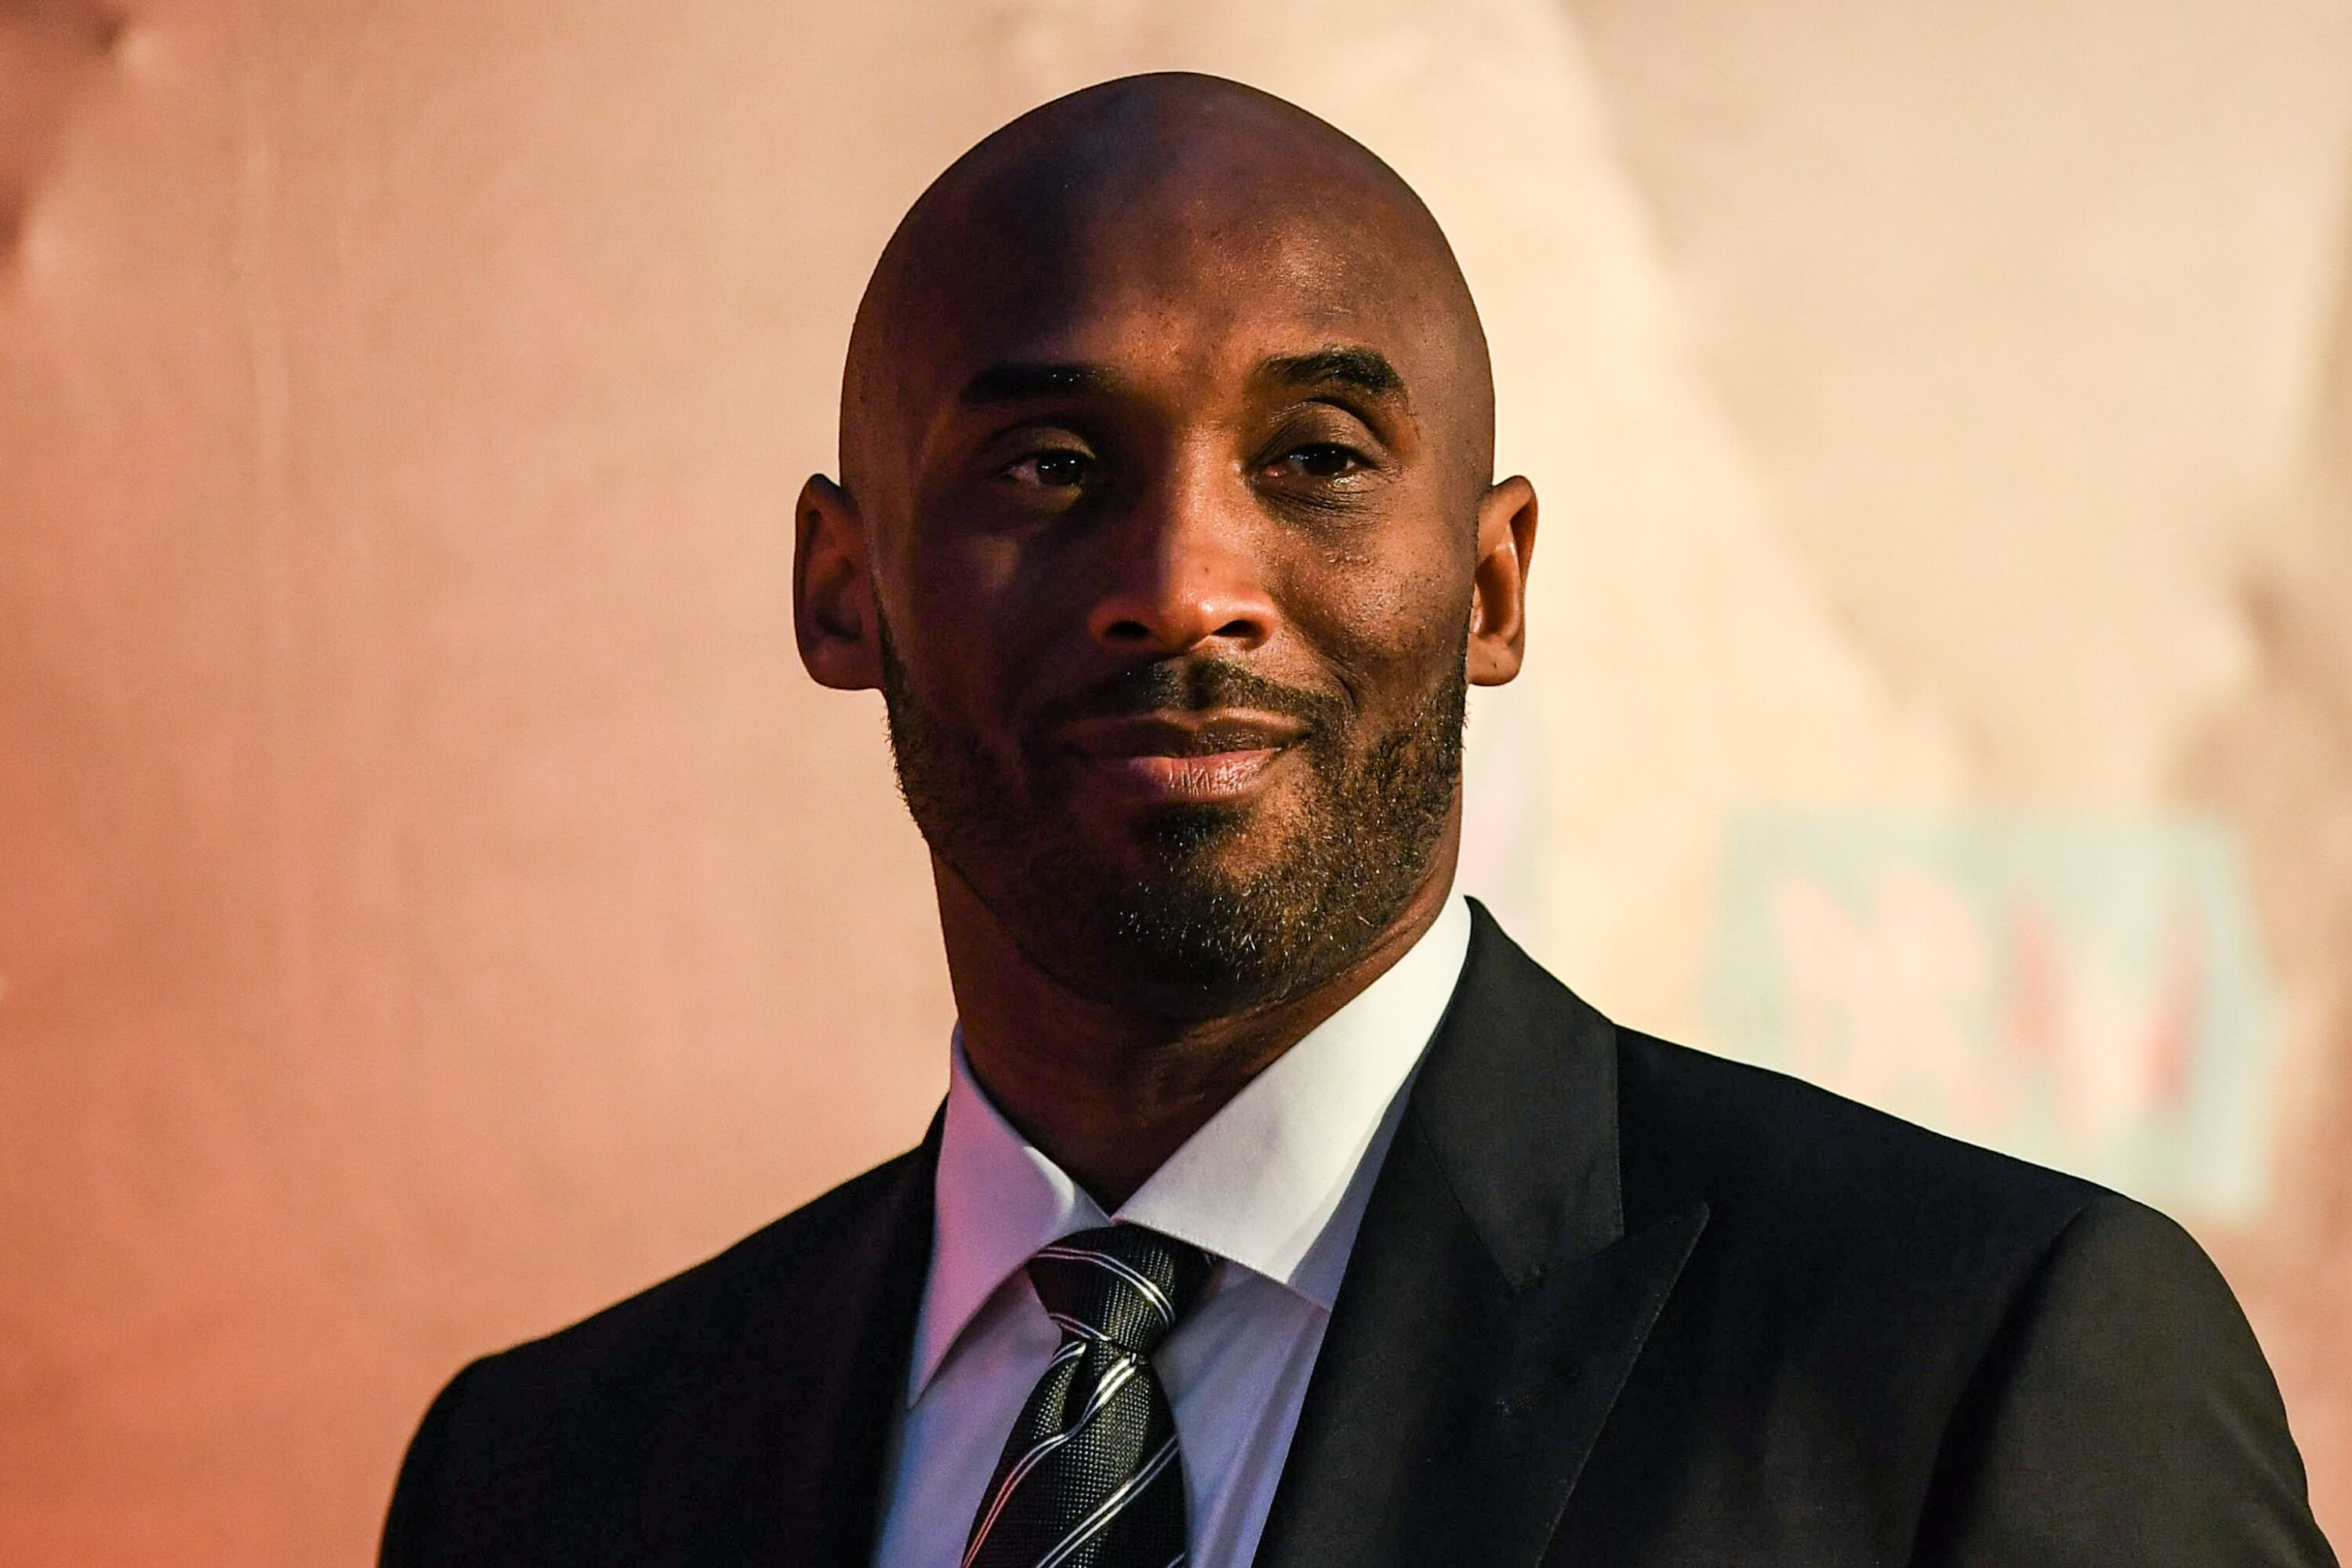 Late Kobe Bryant during the FIBA Basketball World Cup 2019 Draw Ceremony on March 16, 2019. | Photo: Getty Images